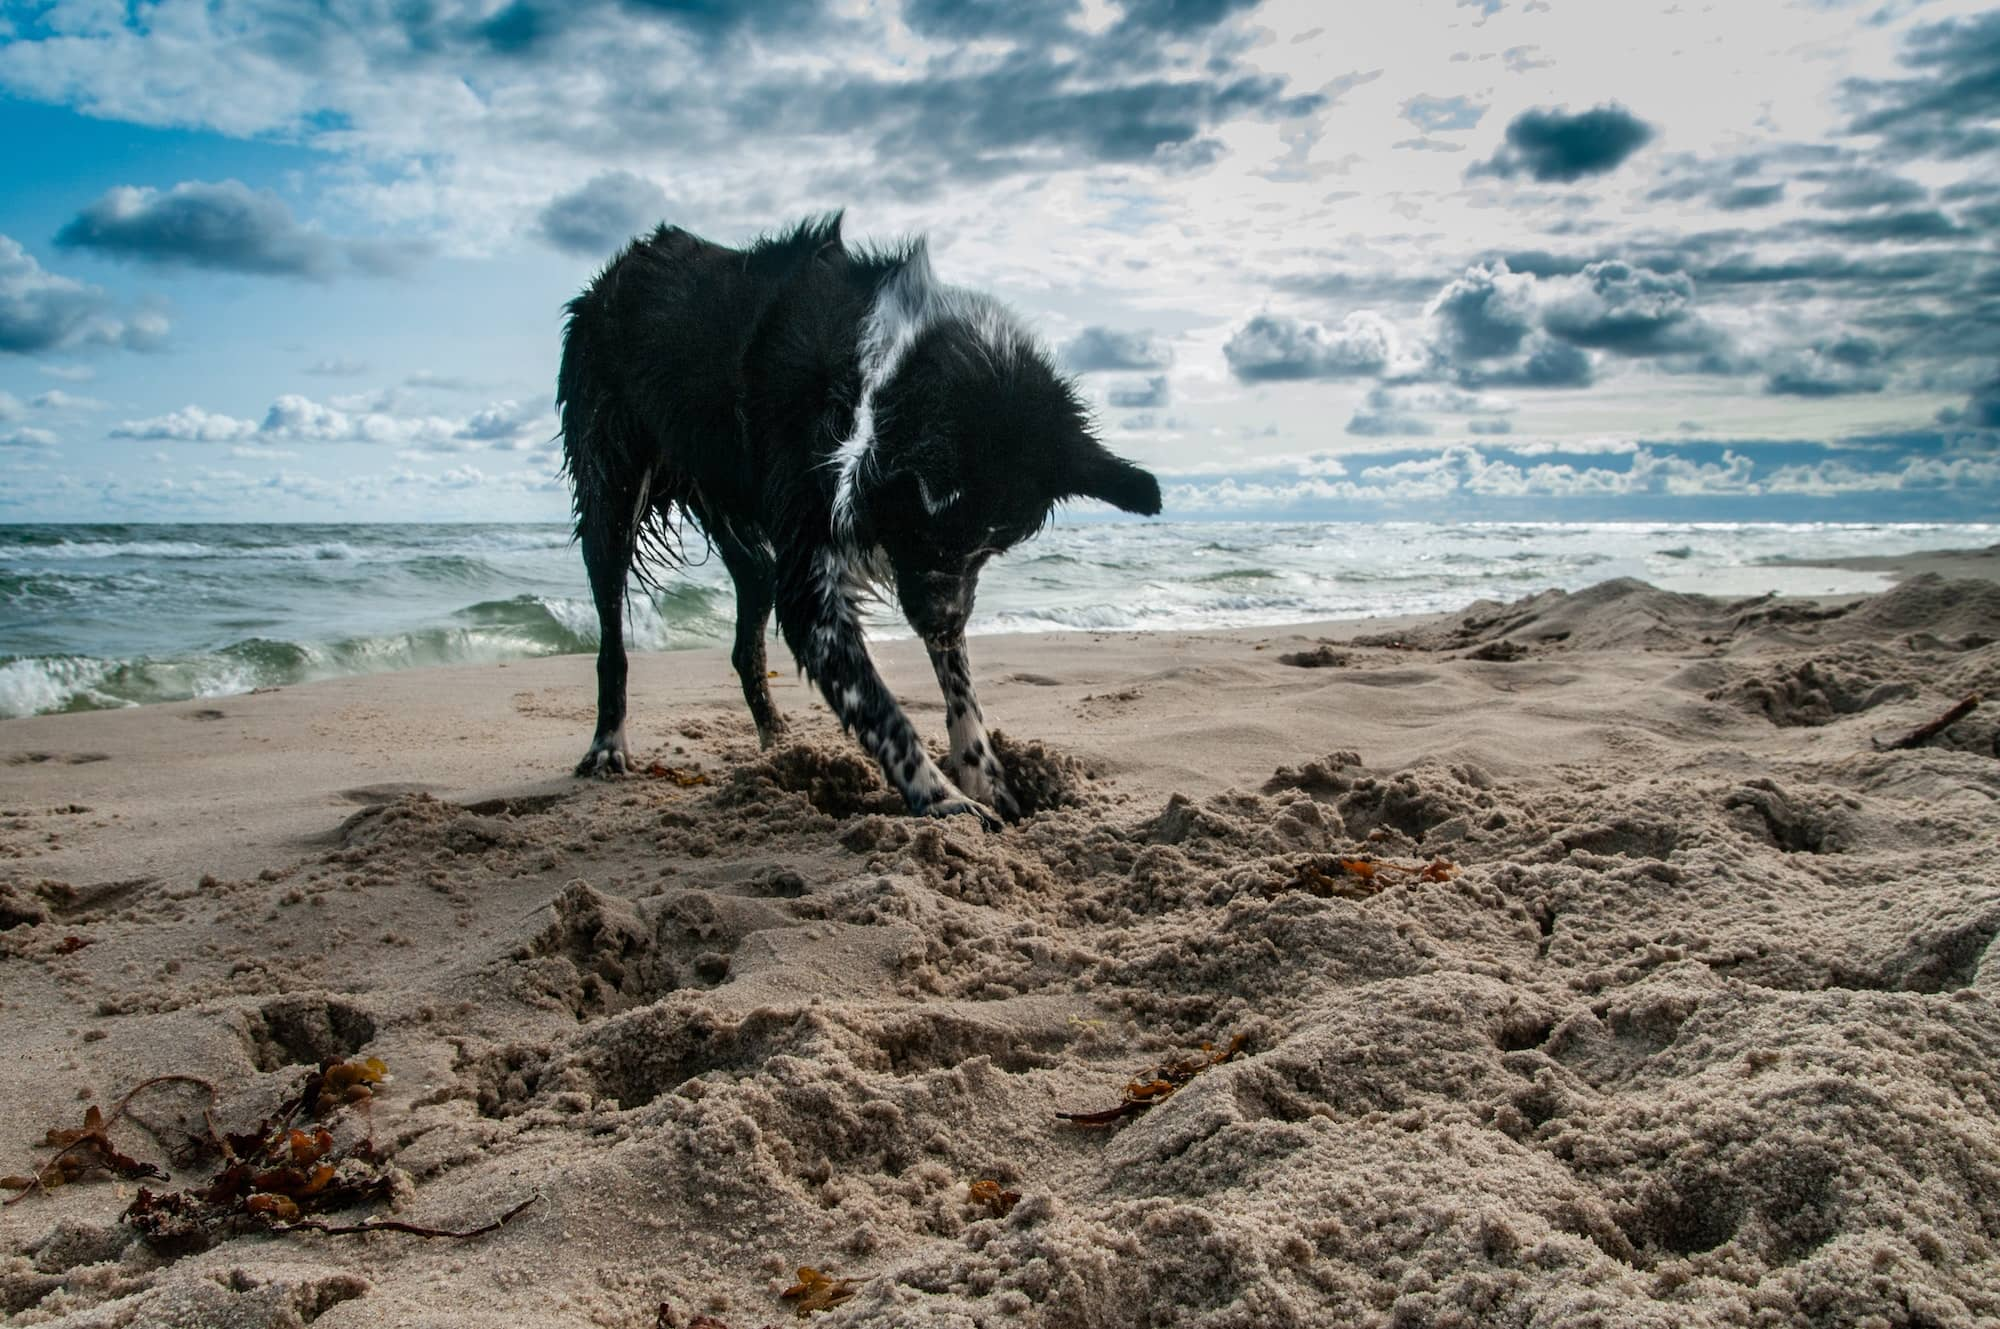 dog digging in the sand on the beach near the sea